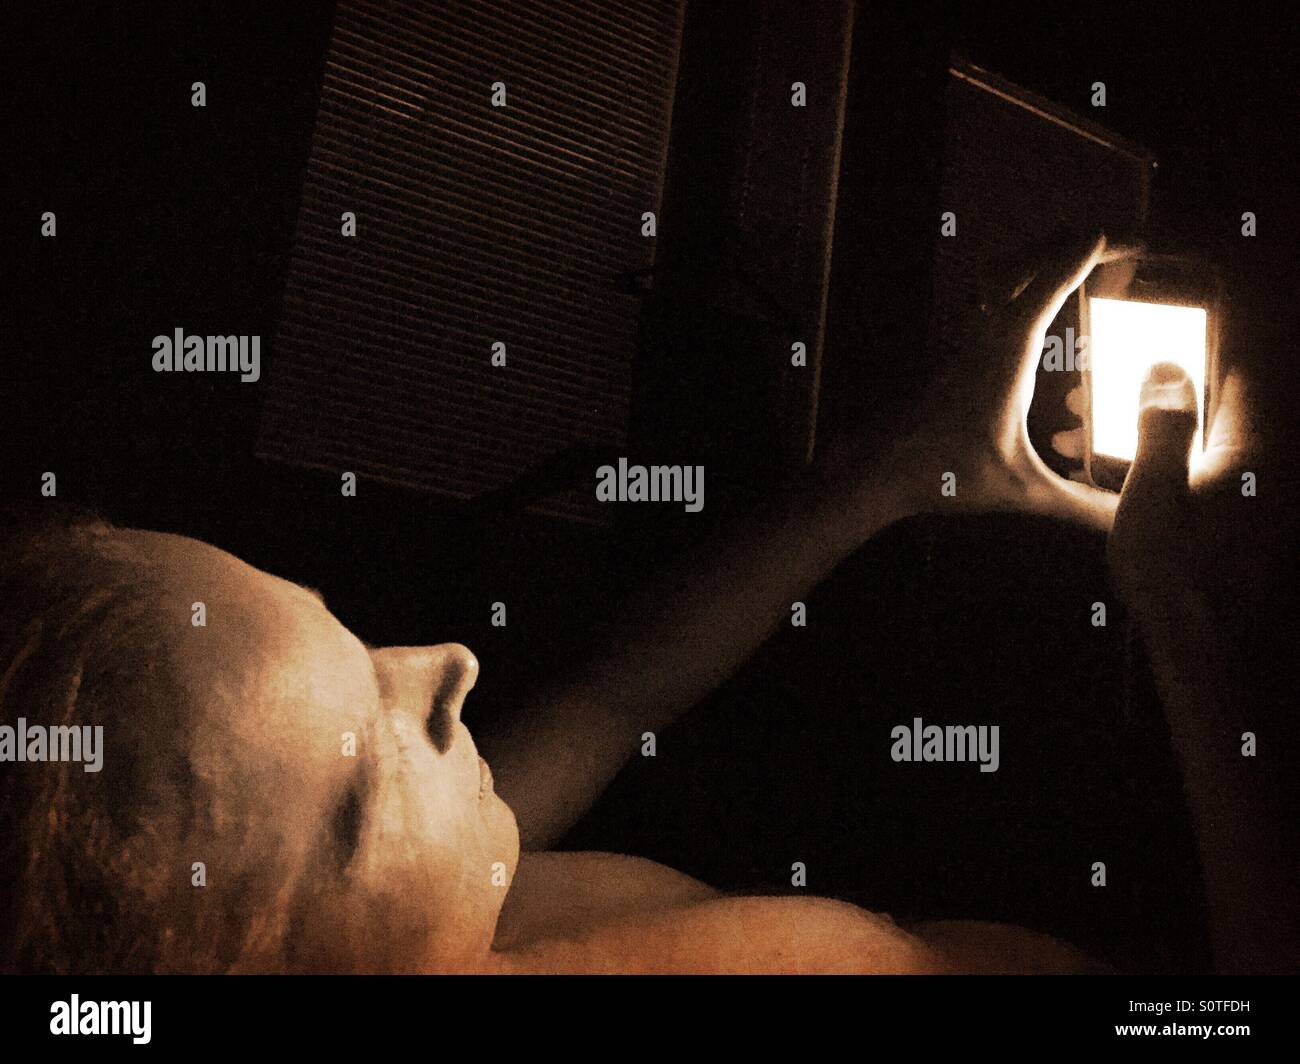 A man using an iPhone at dark bedroom - Stock Image